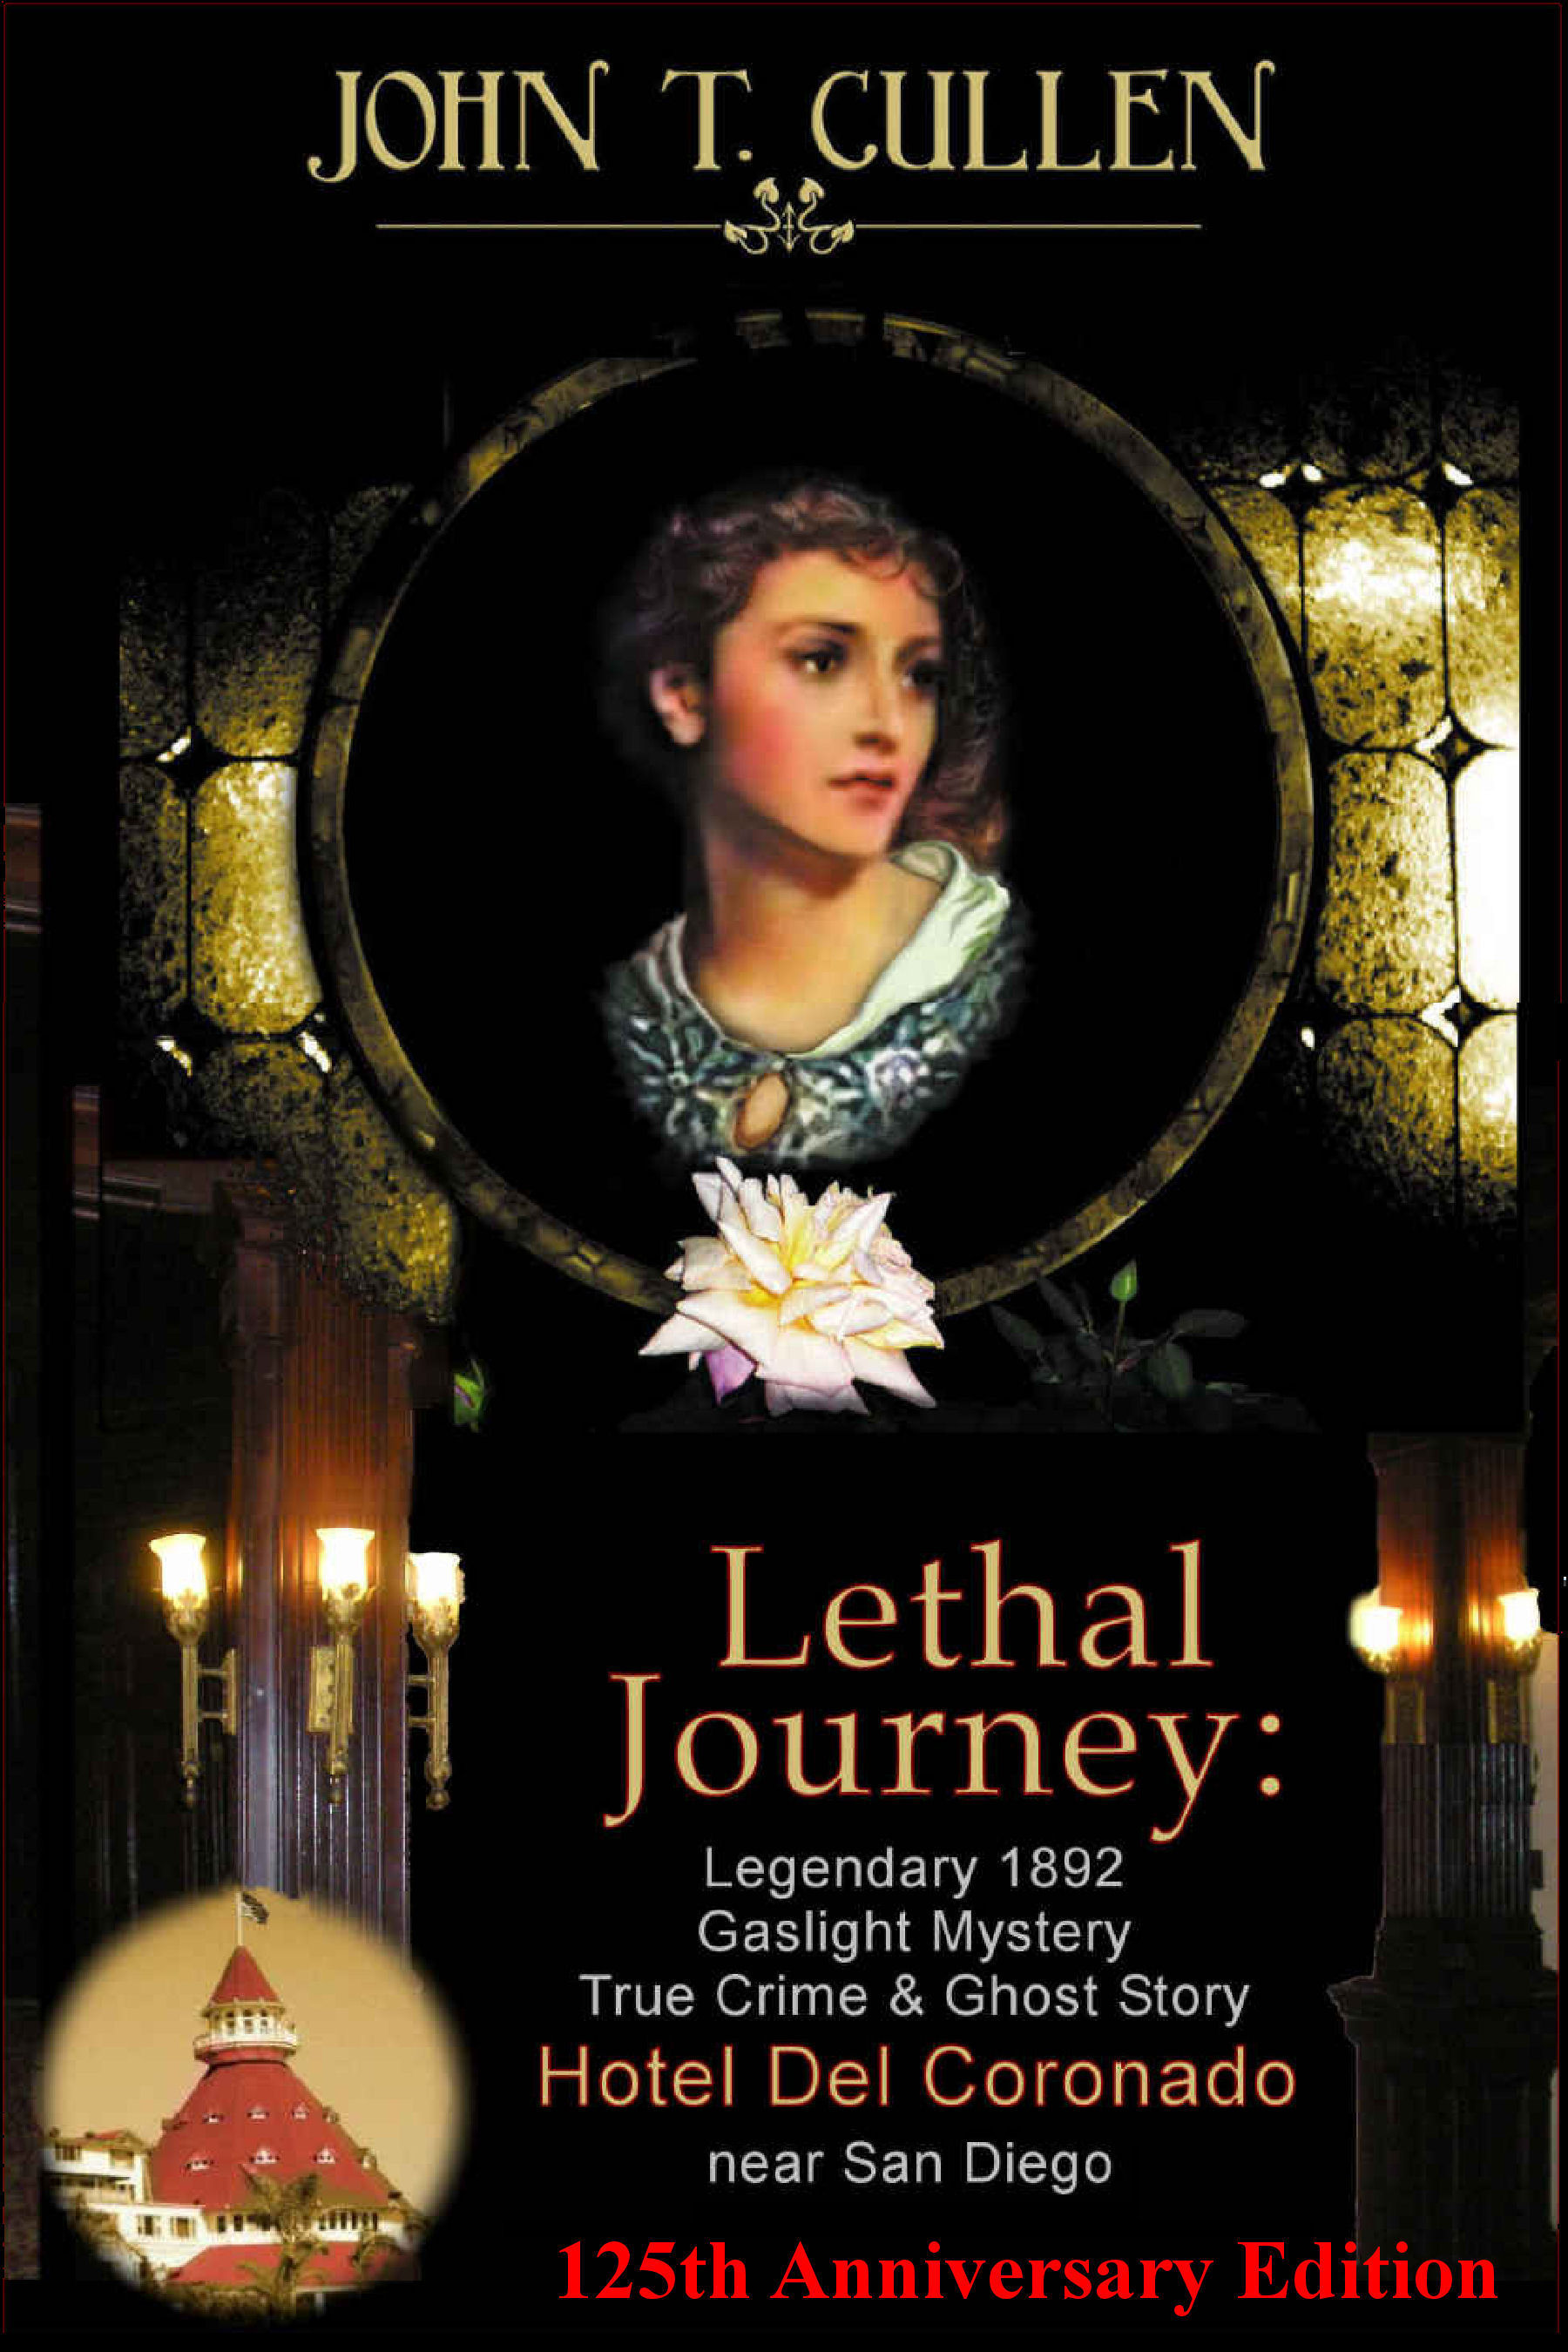 Lethal Journey - fiction - a dramatization based on Dead Move by John T. Cullen, and the best of the legend.